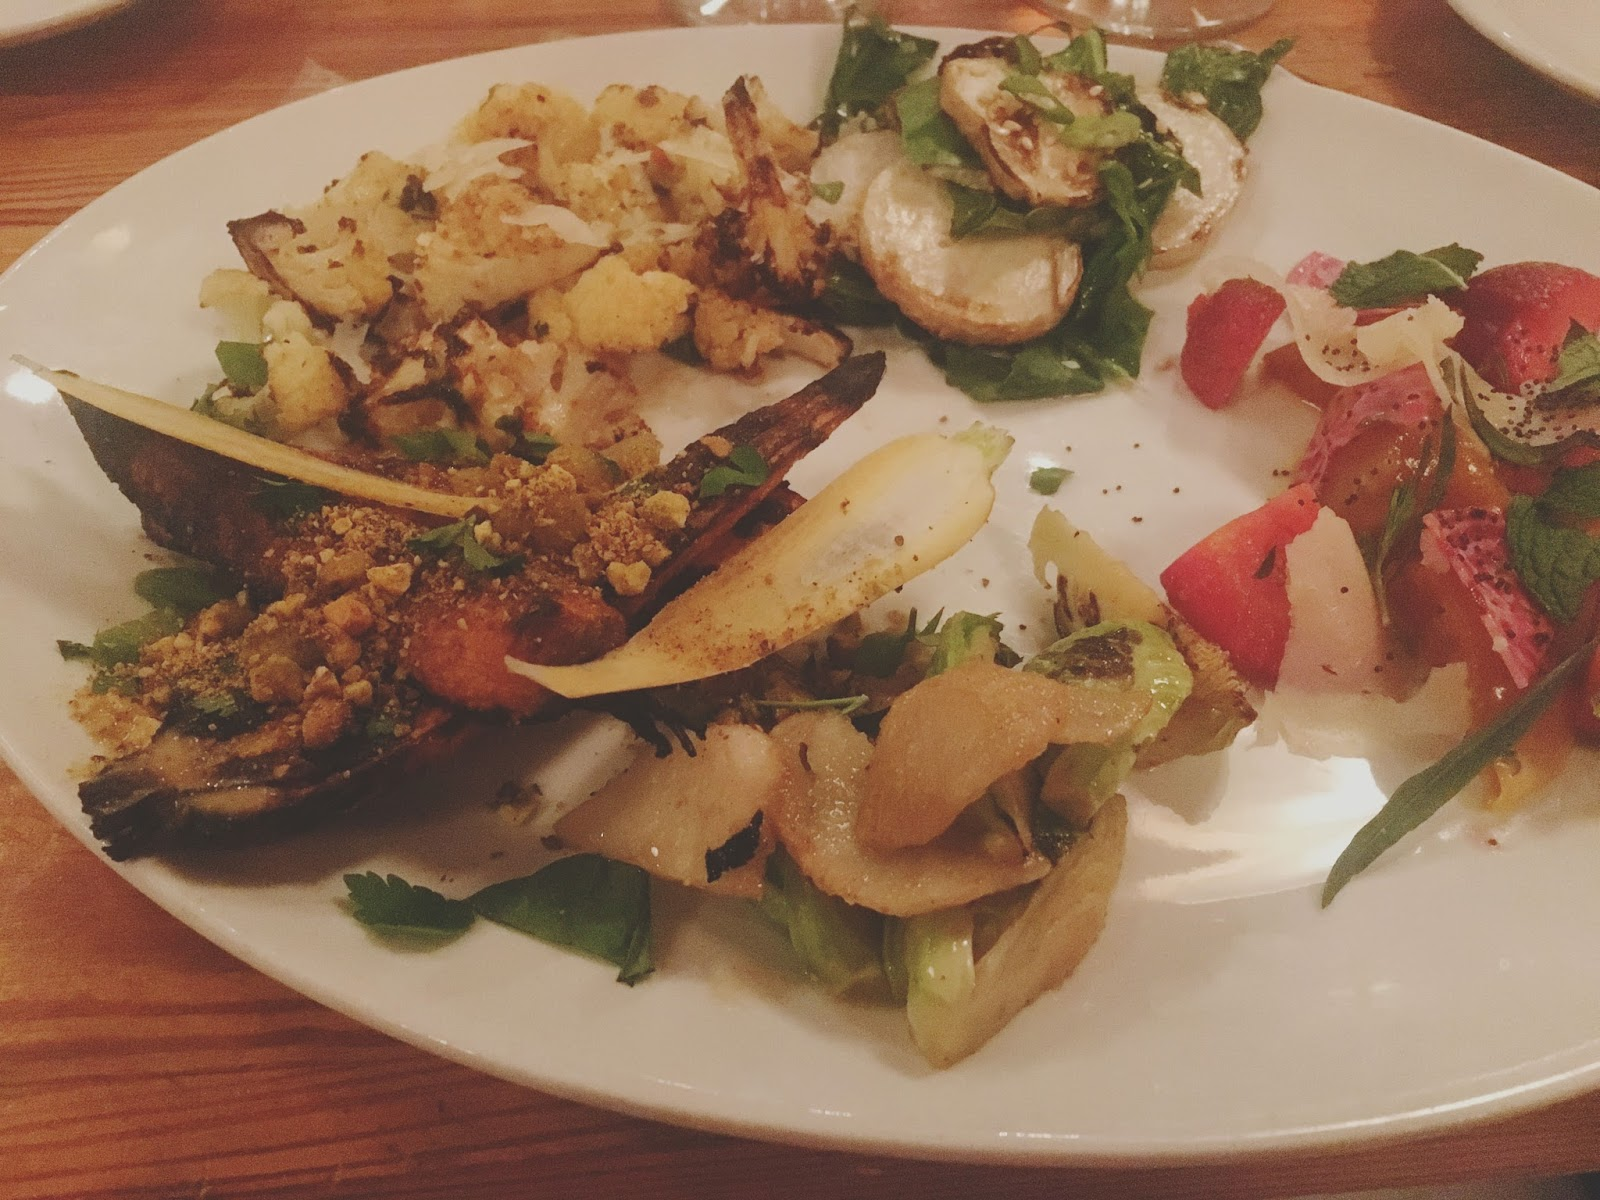 vegetarian platter at The Grocery - a restaurant in Charleston, South Carolina